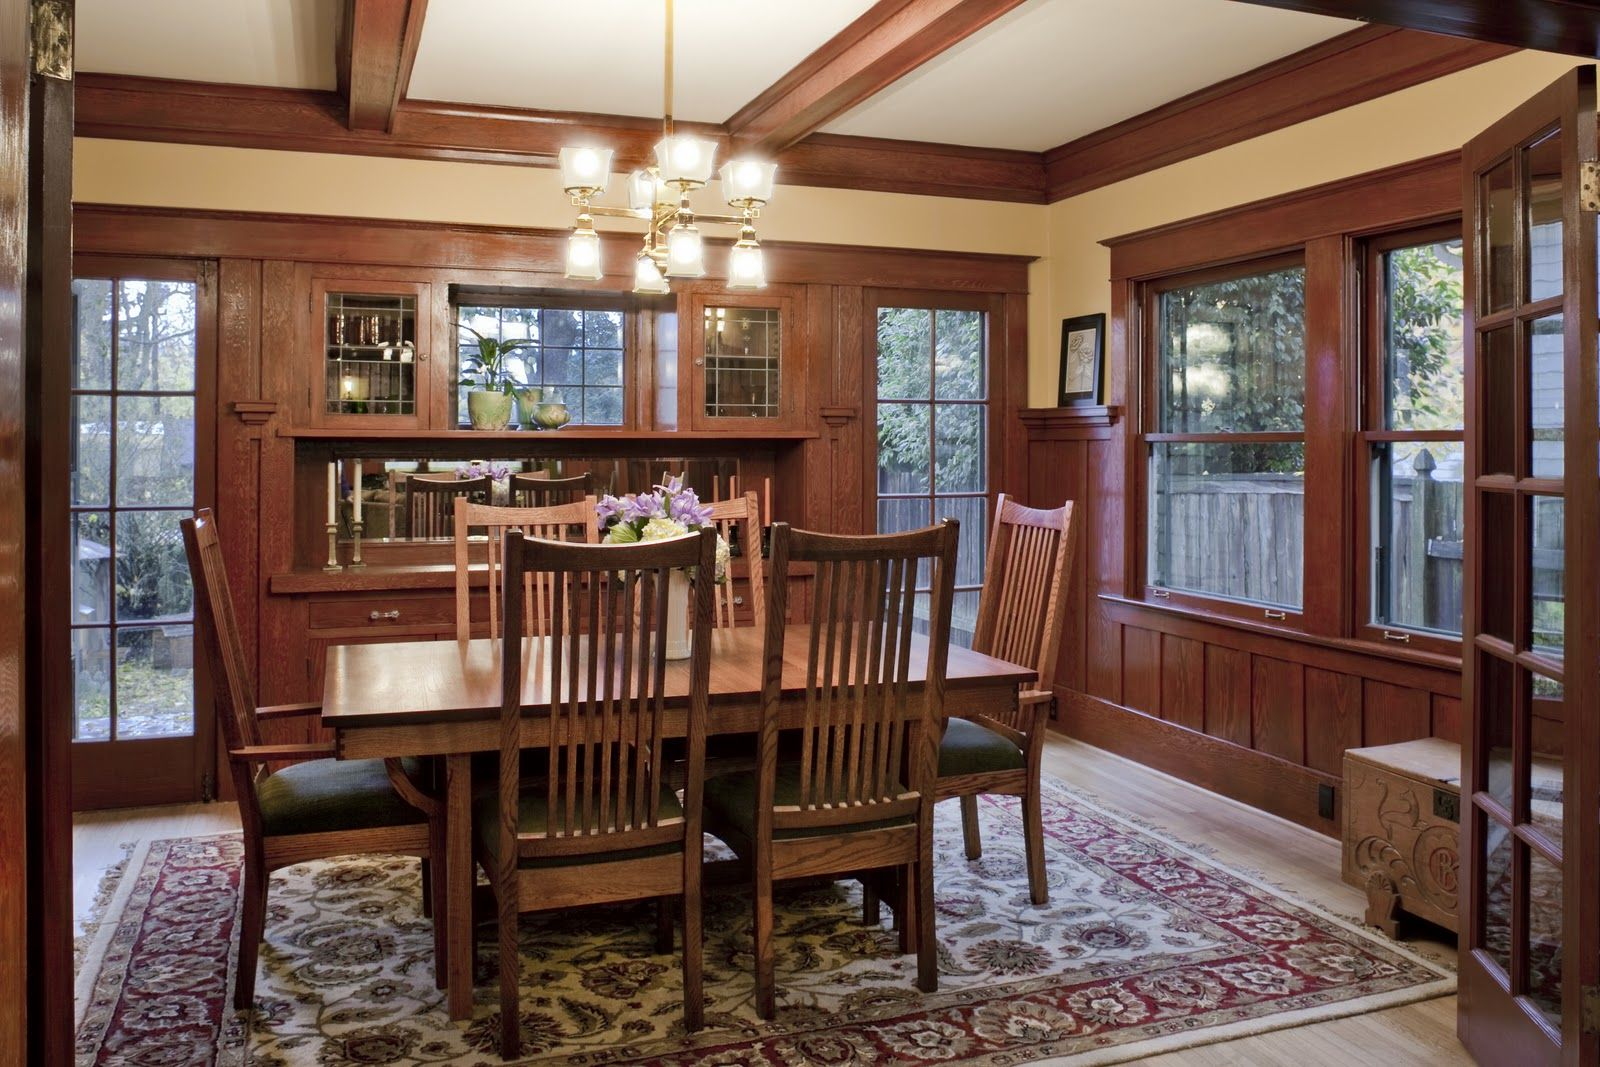 Craftsman Dining Room With Wainscoting Paneling And Built In China Cabinet House Remodeled By Design Renovation